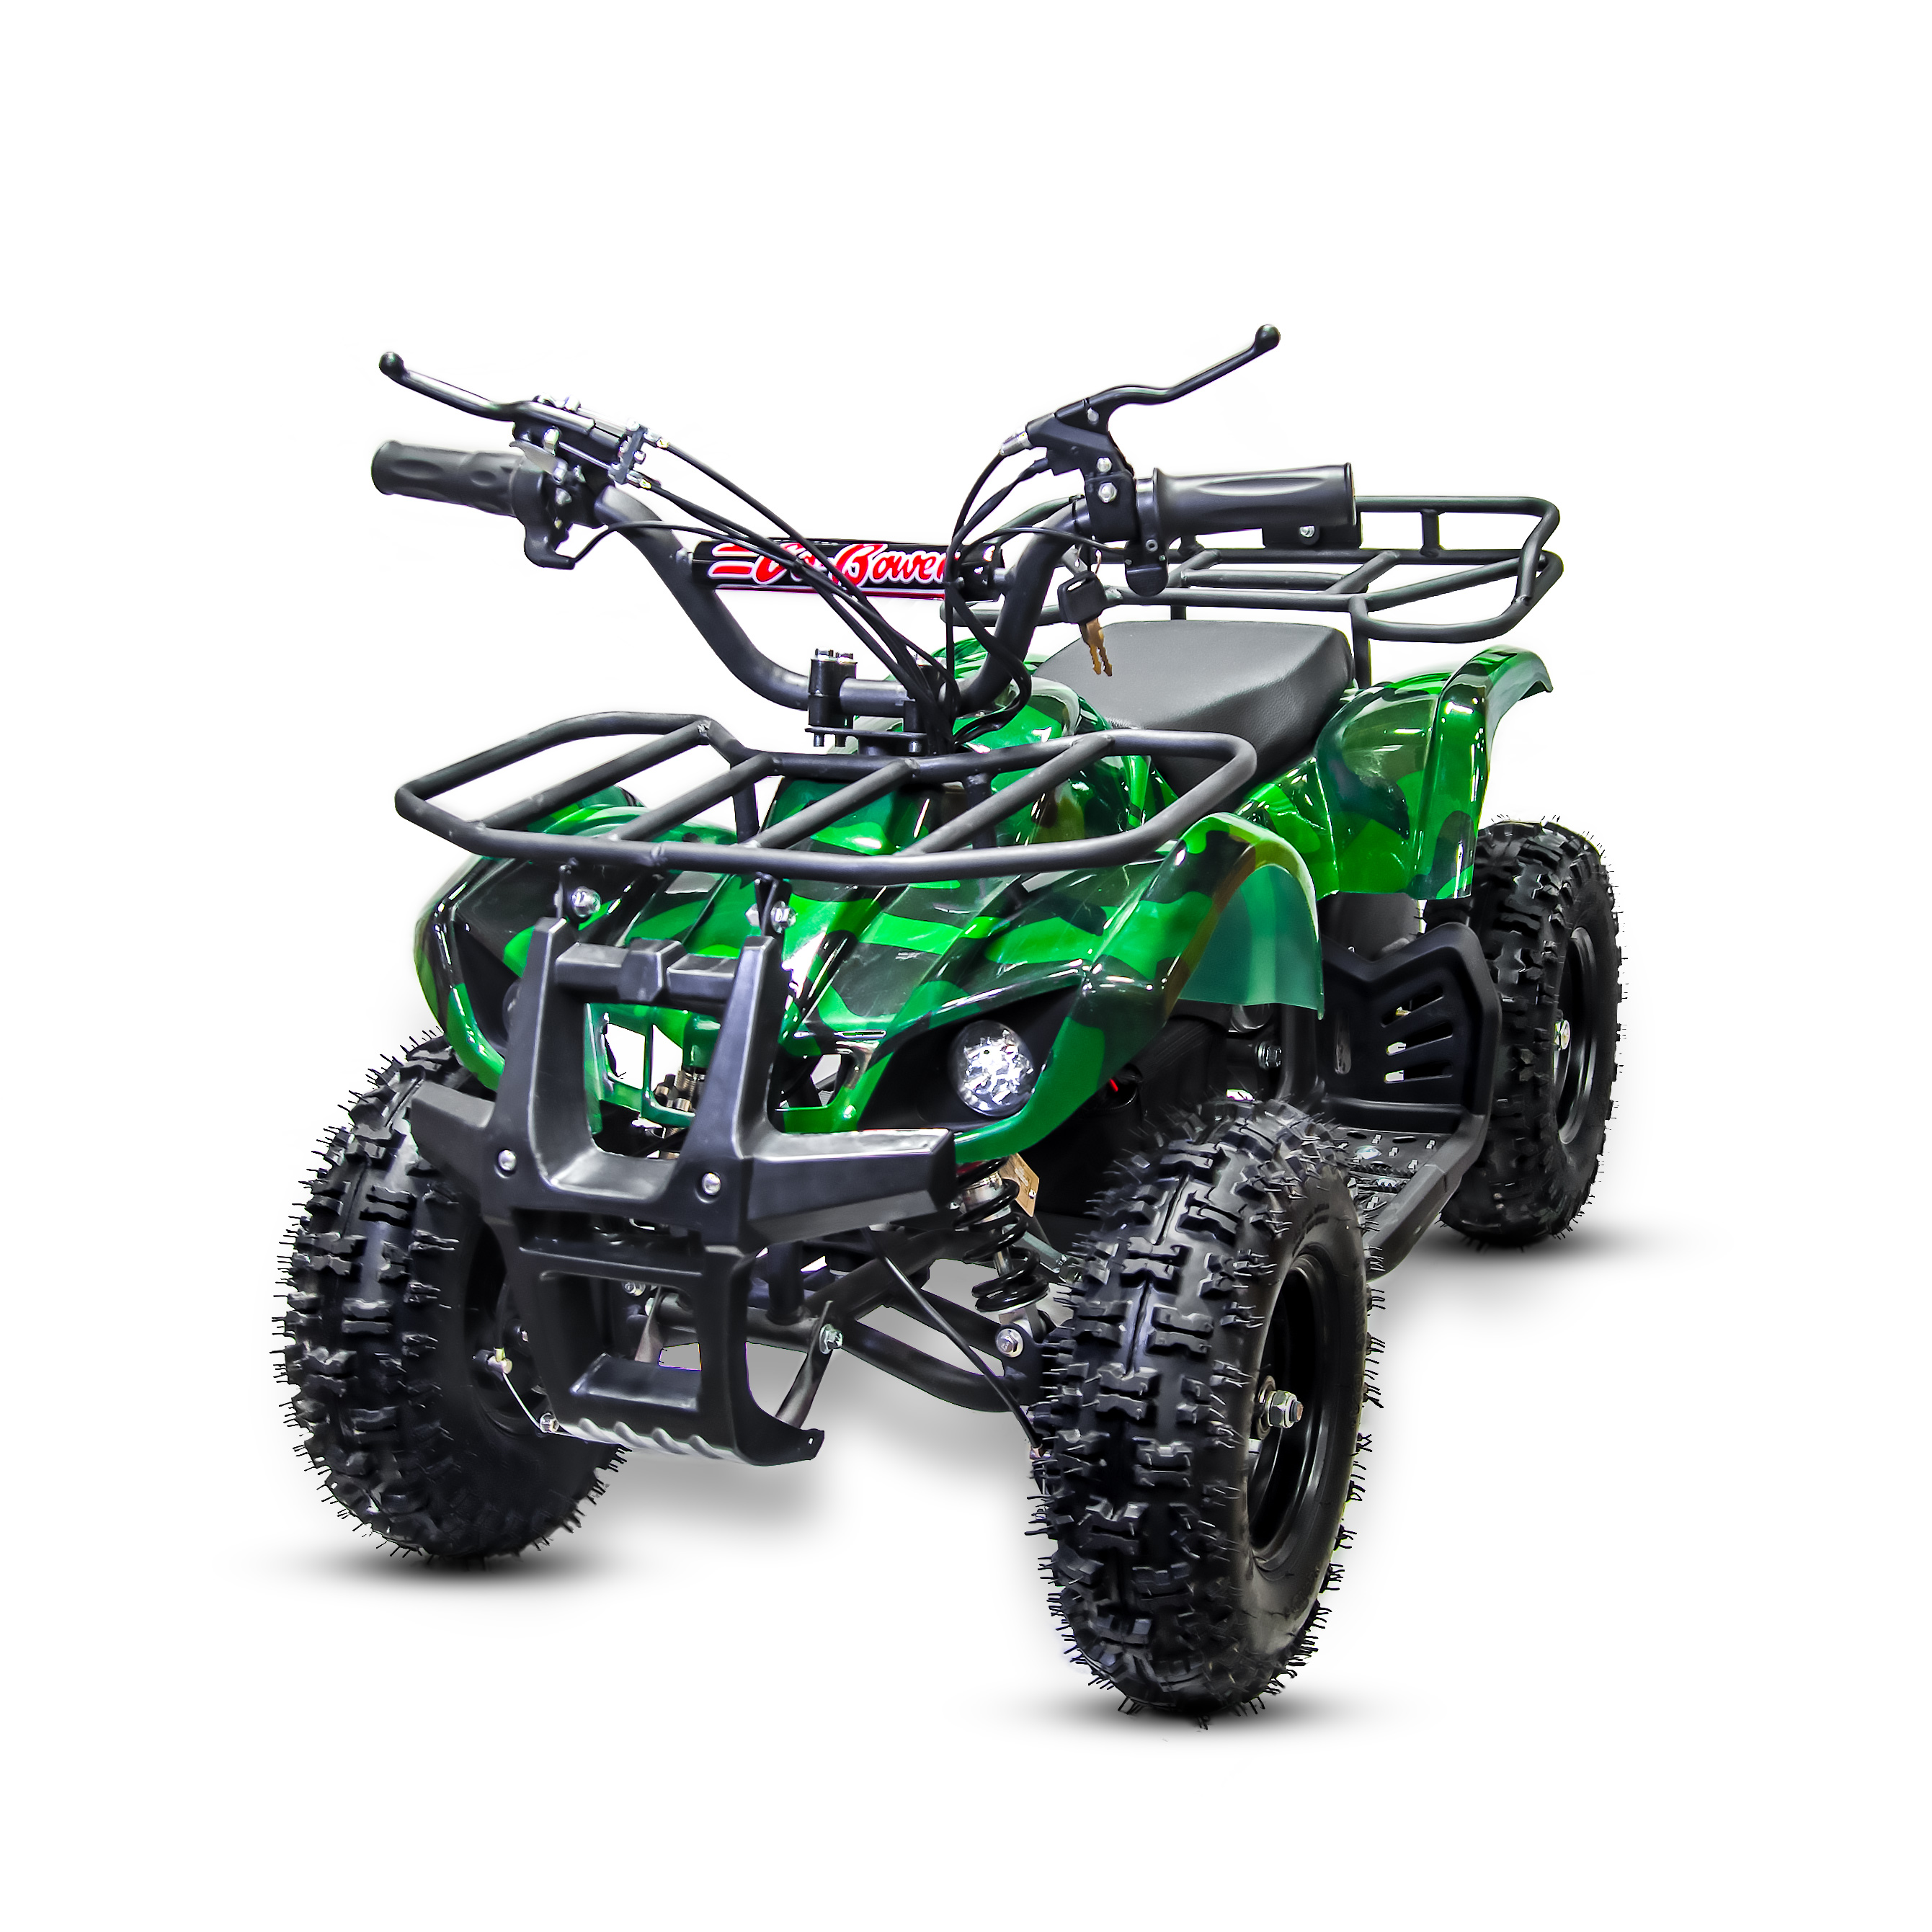 Electric Mini ATV Sonora on 350W 24V (green camo)